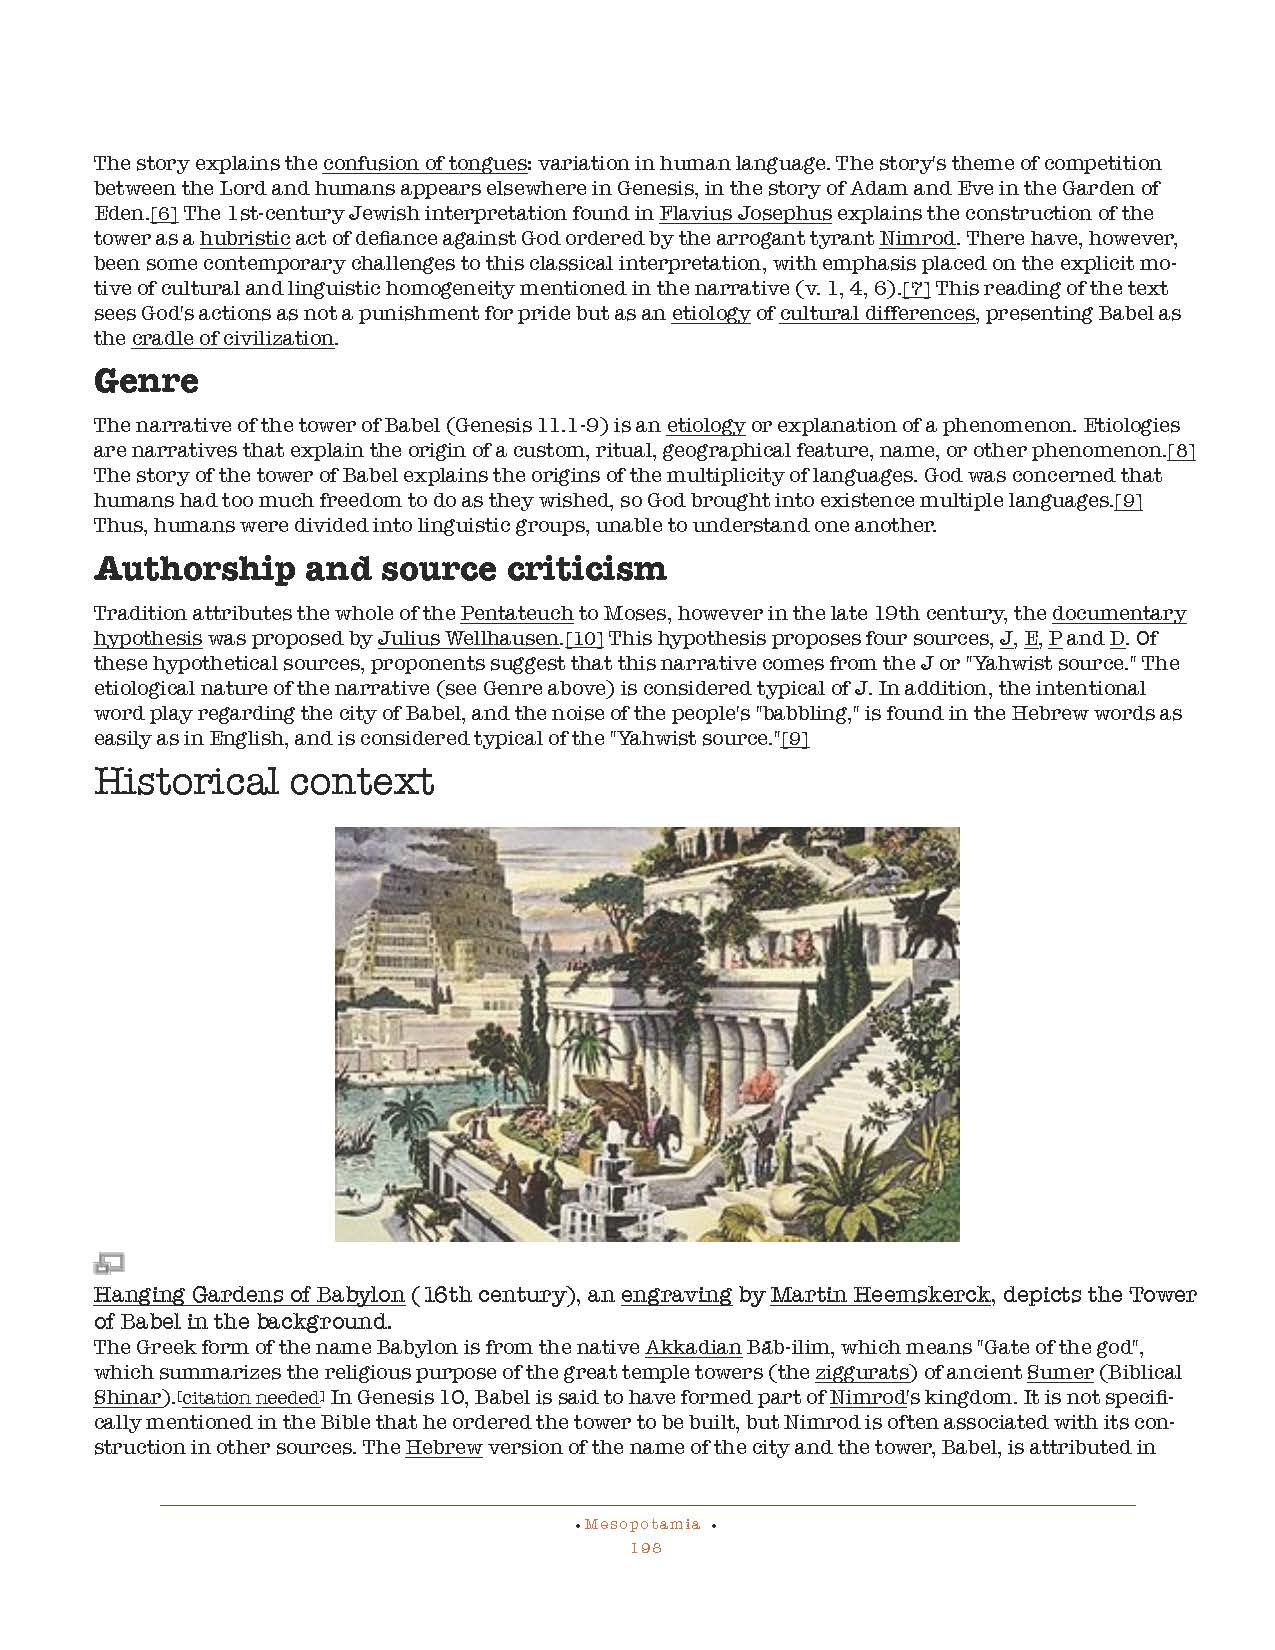 HOCE- Fertile Crescent Notes_Page_198.jpg